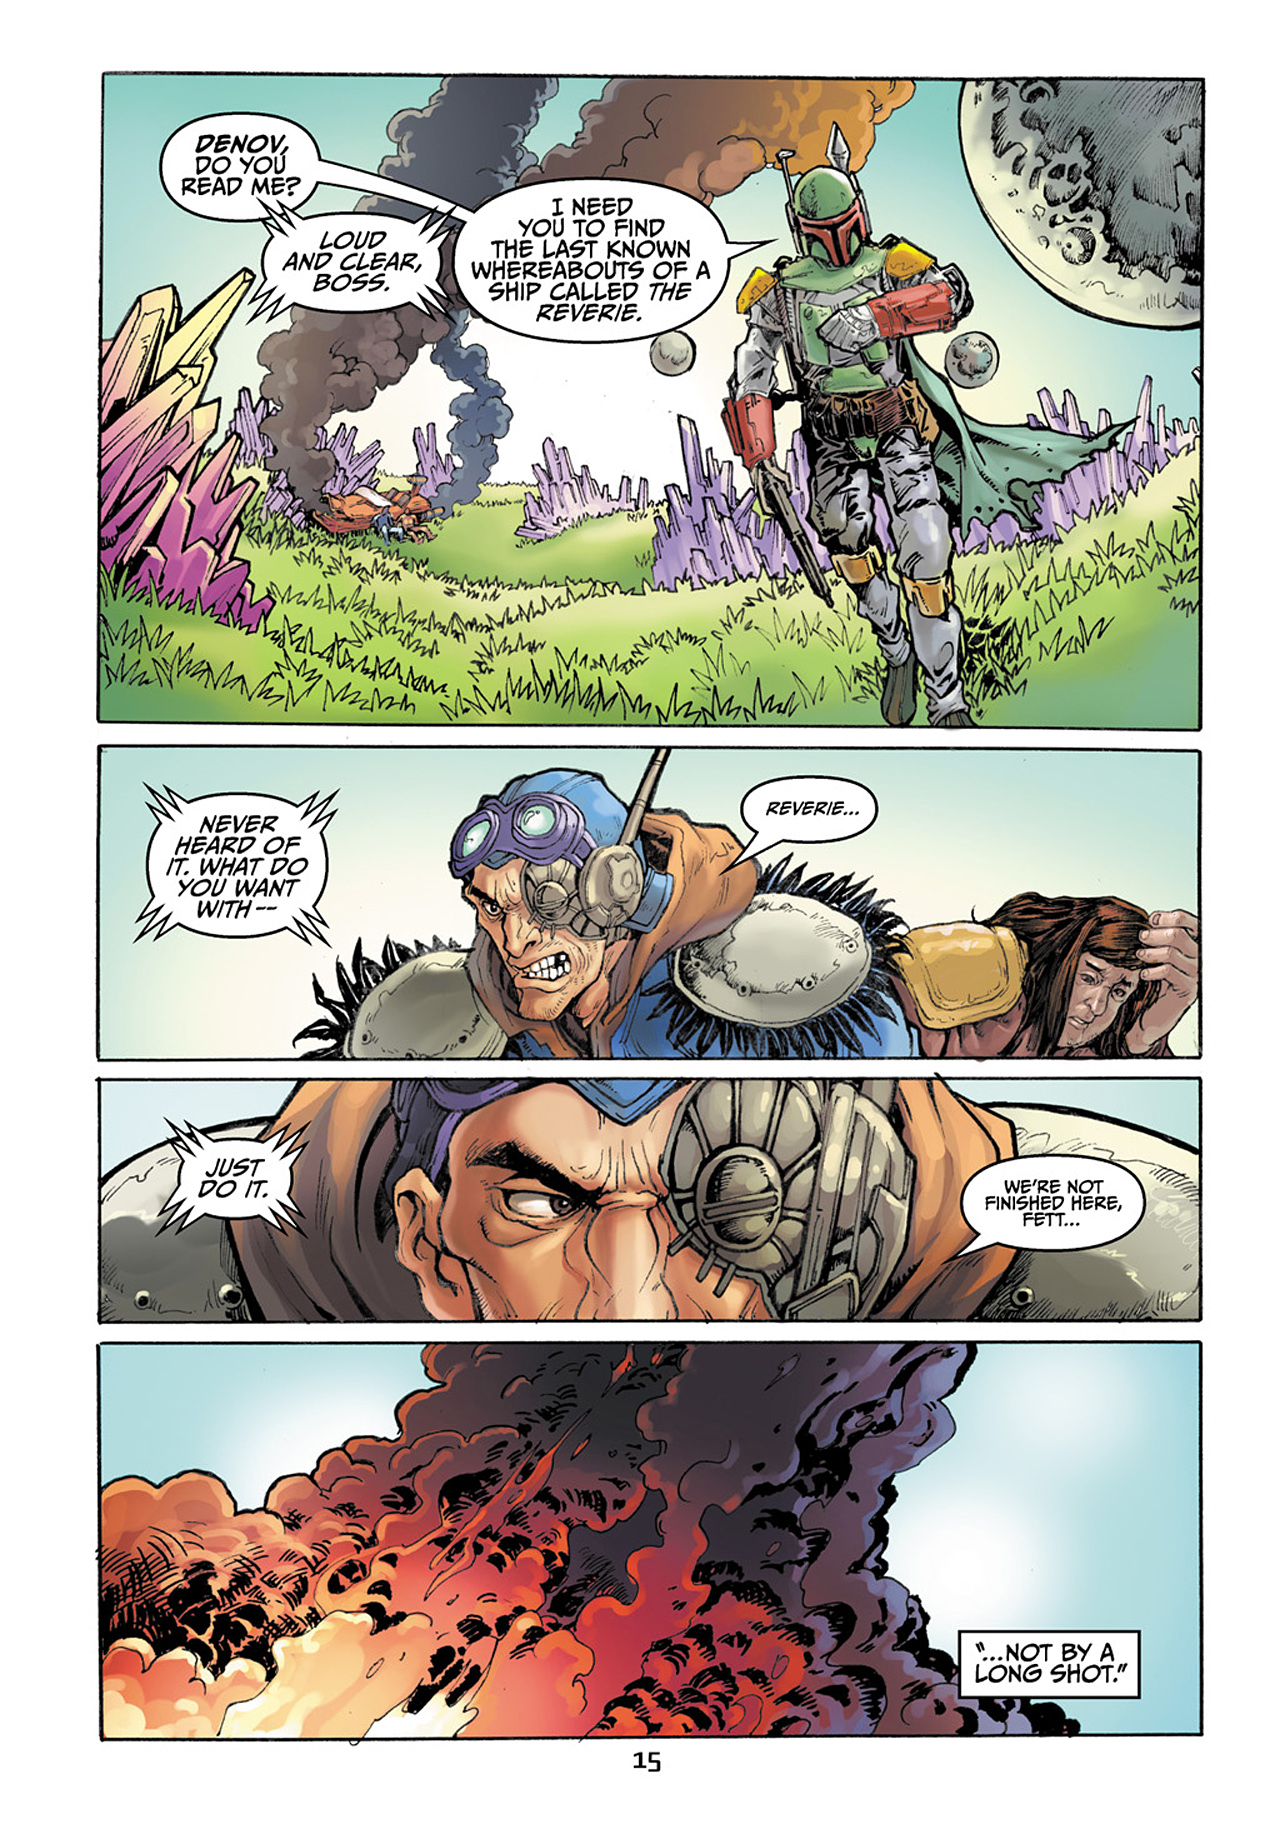 Read online Star Wars Adventures comic -  Issue # Issue Boba Fett and the Ship of Fear - 16